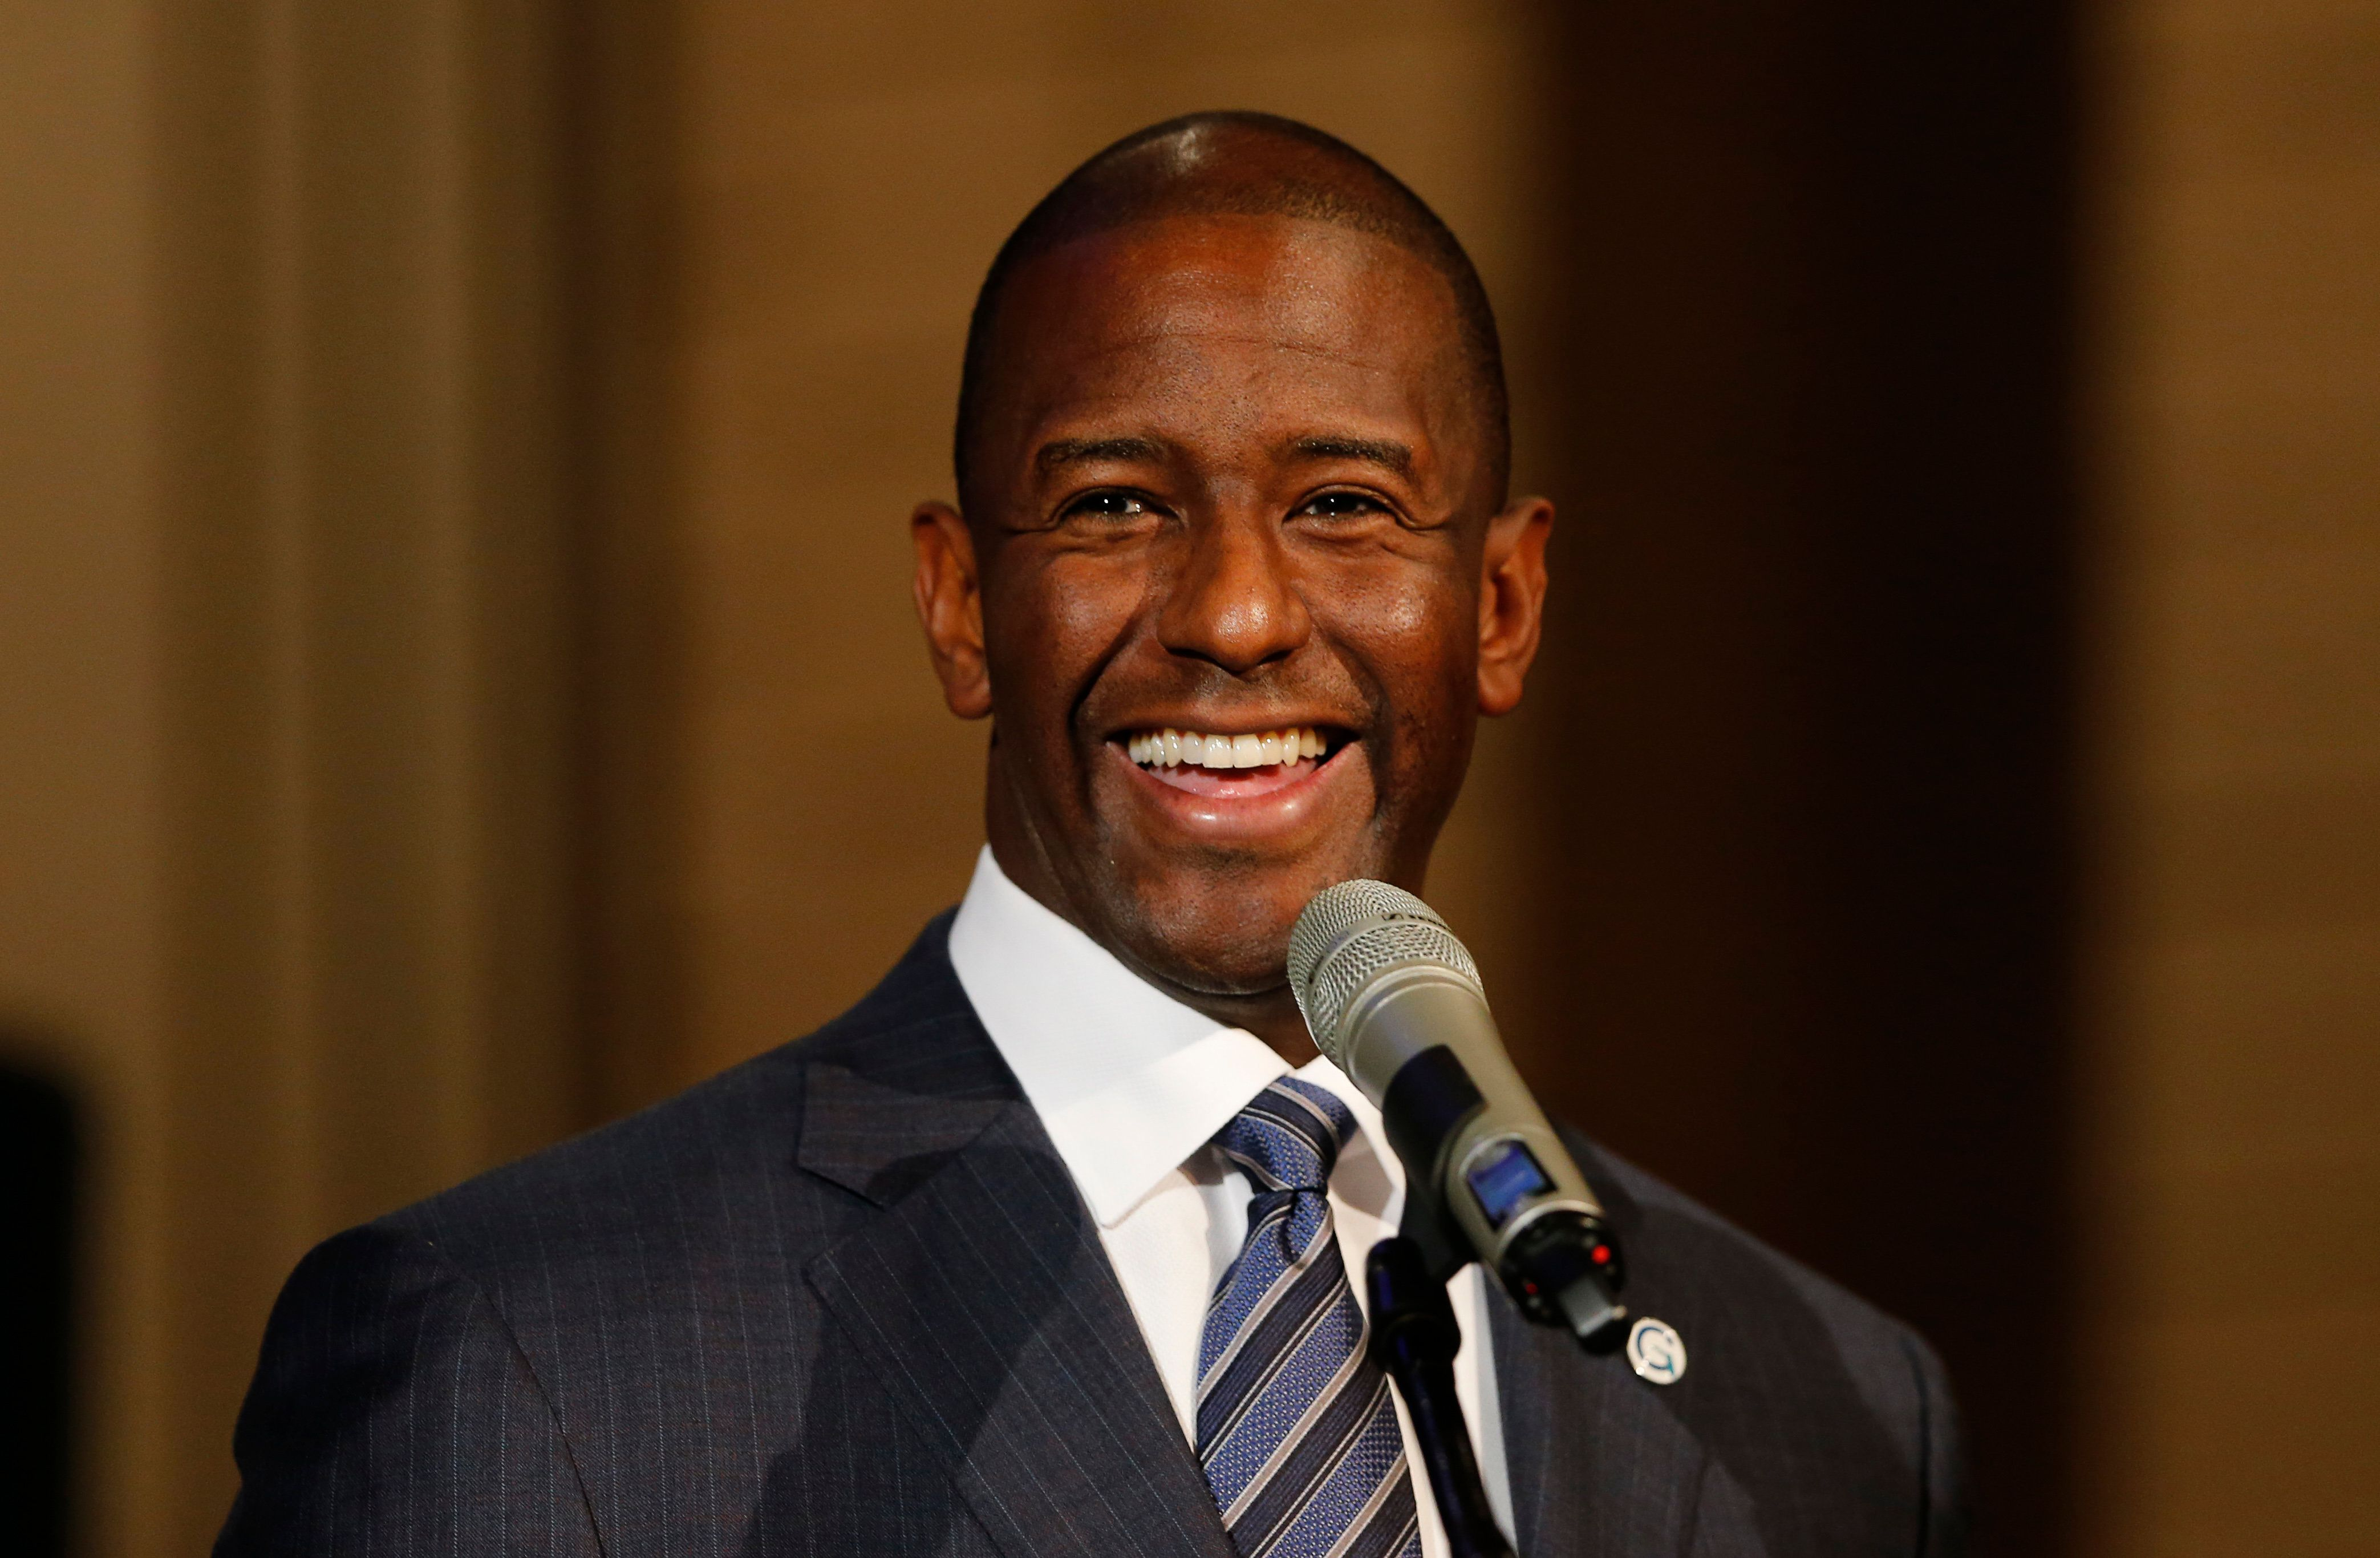 Andrew Gillum Shreds Donald Trump With Just 3 Little Words